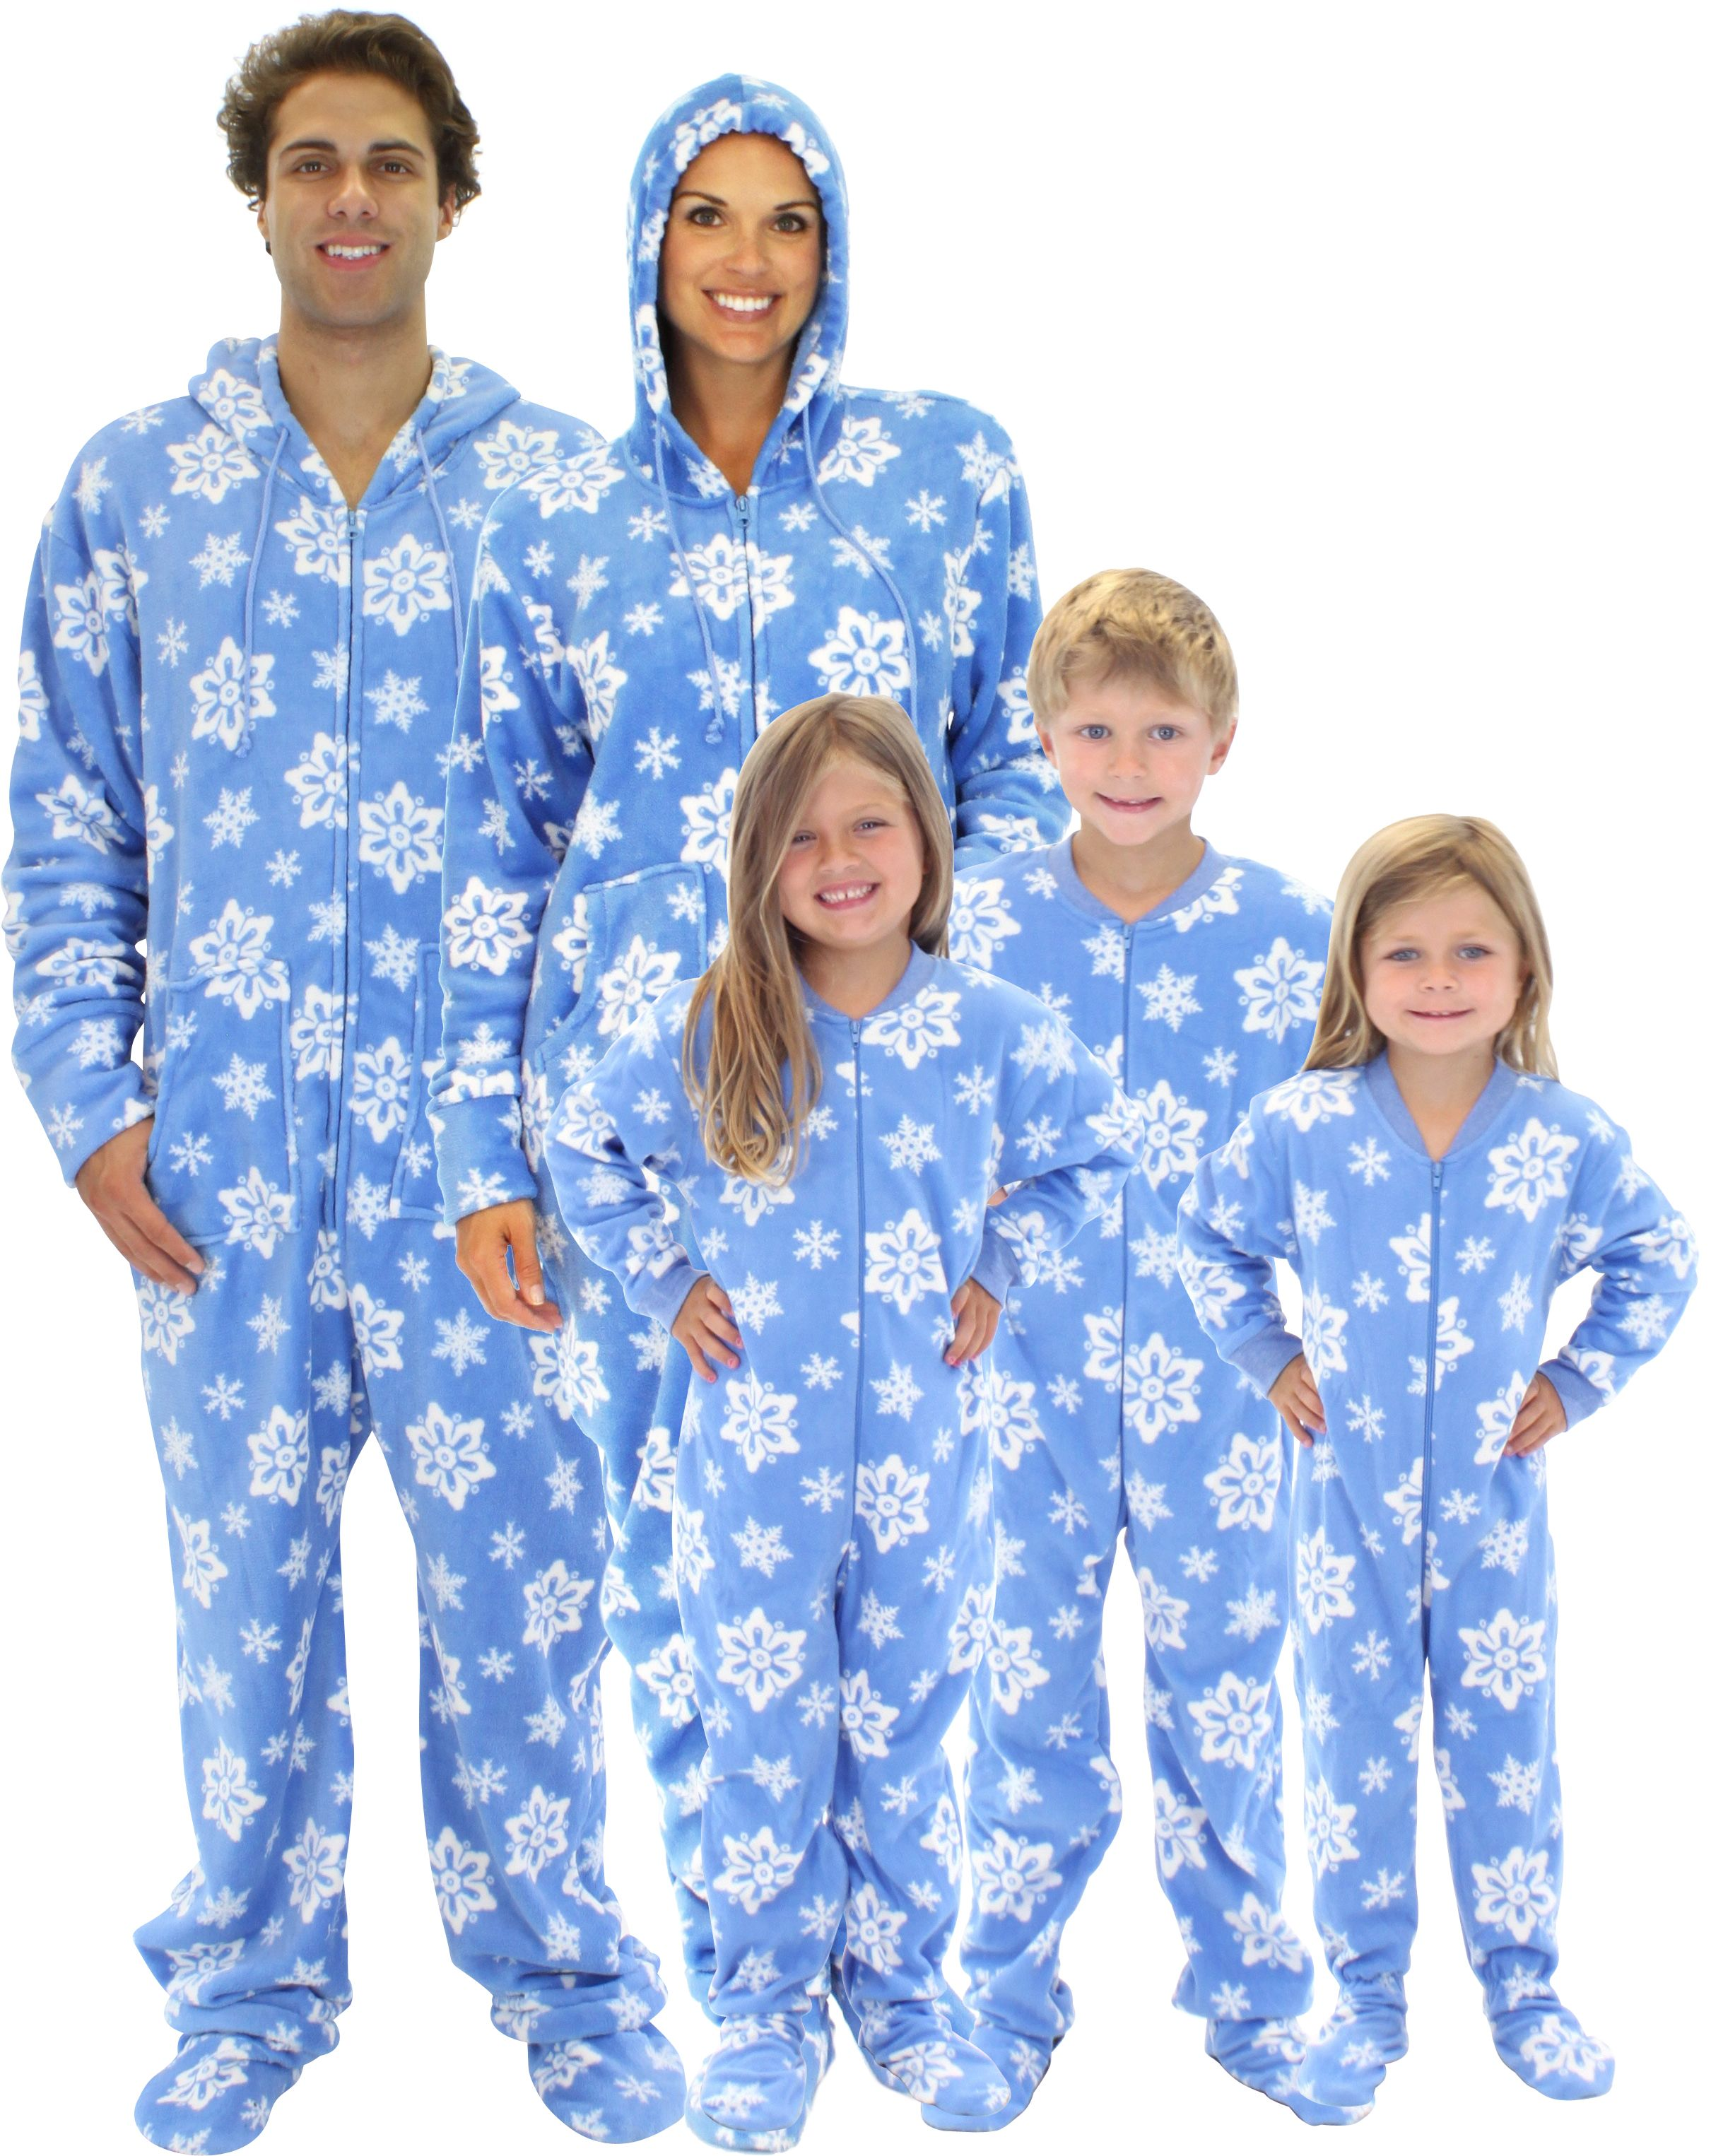 Blue Snowflake Family Matching Fleece One Piece Footed Pajamas Now is the  best time to order these adorable Blue Snowflake footed pajamas for the  holiday ... 34b74ce80